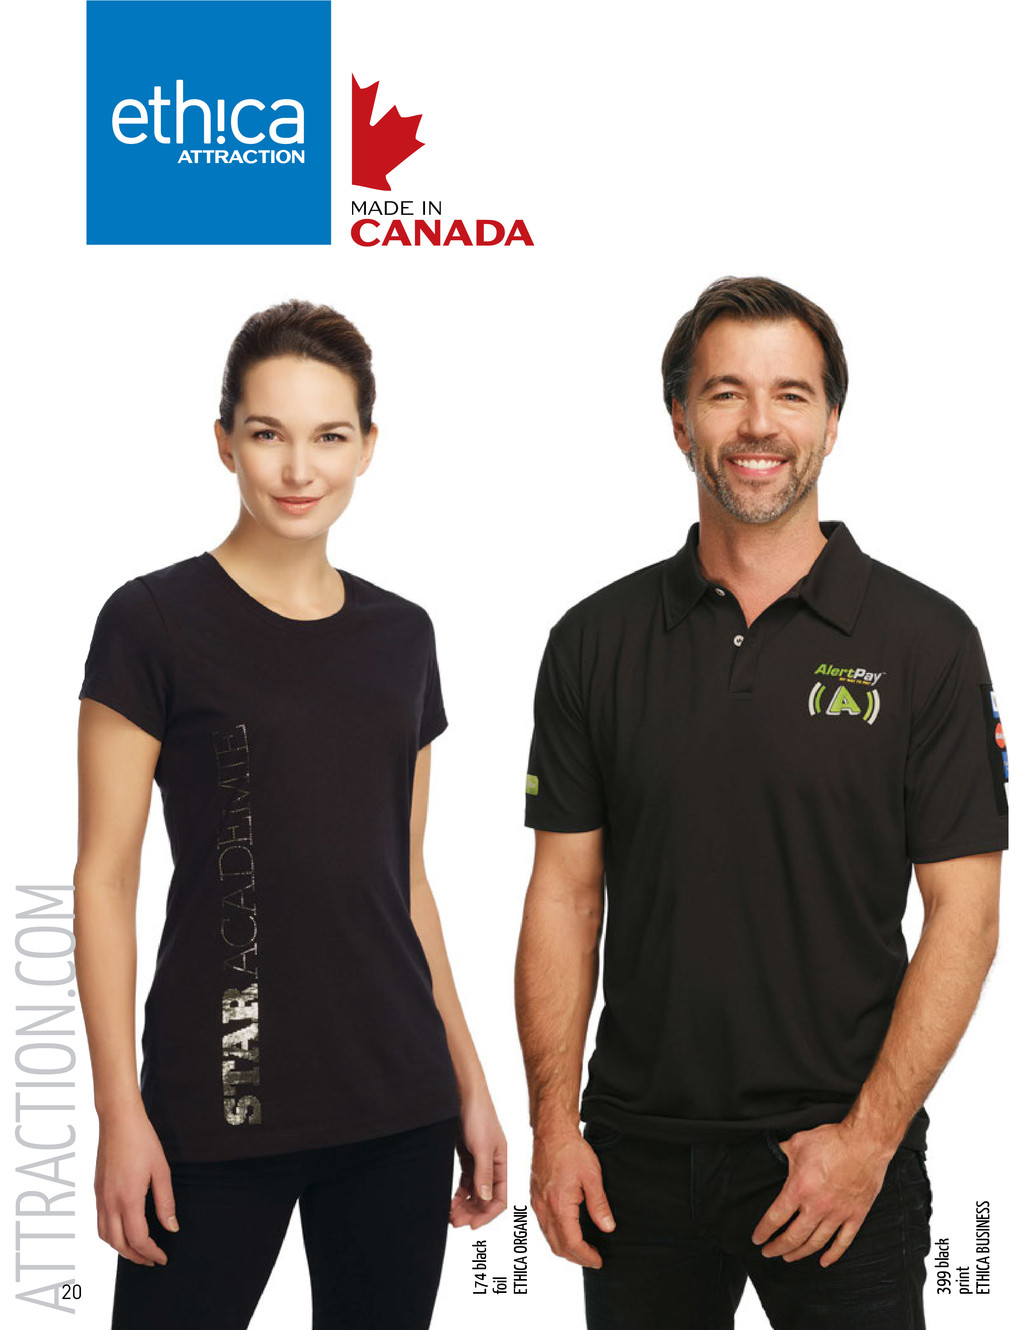 ATTRACTION.COM 399 black print ETHICA BUSINESS ...